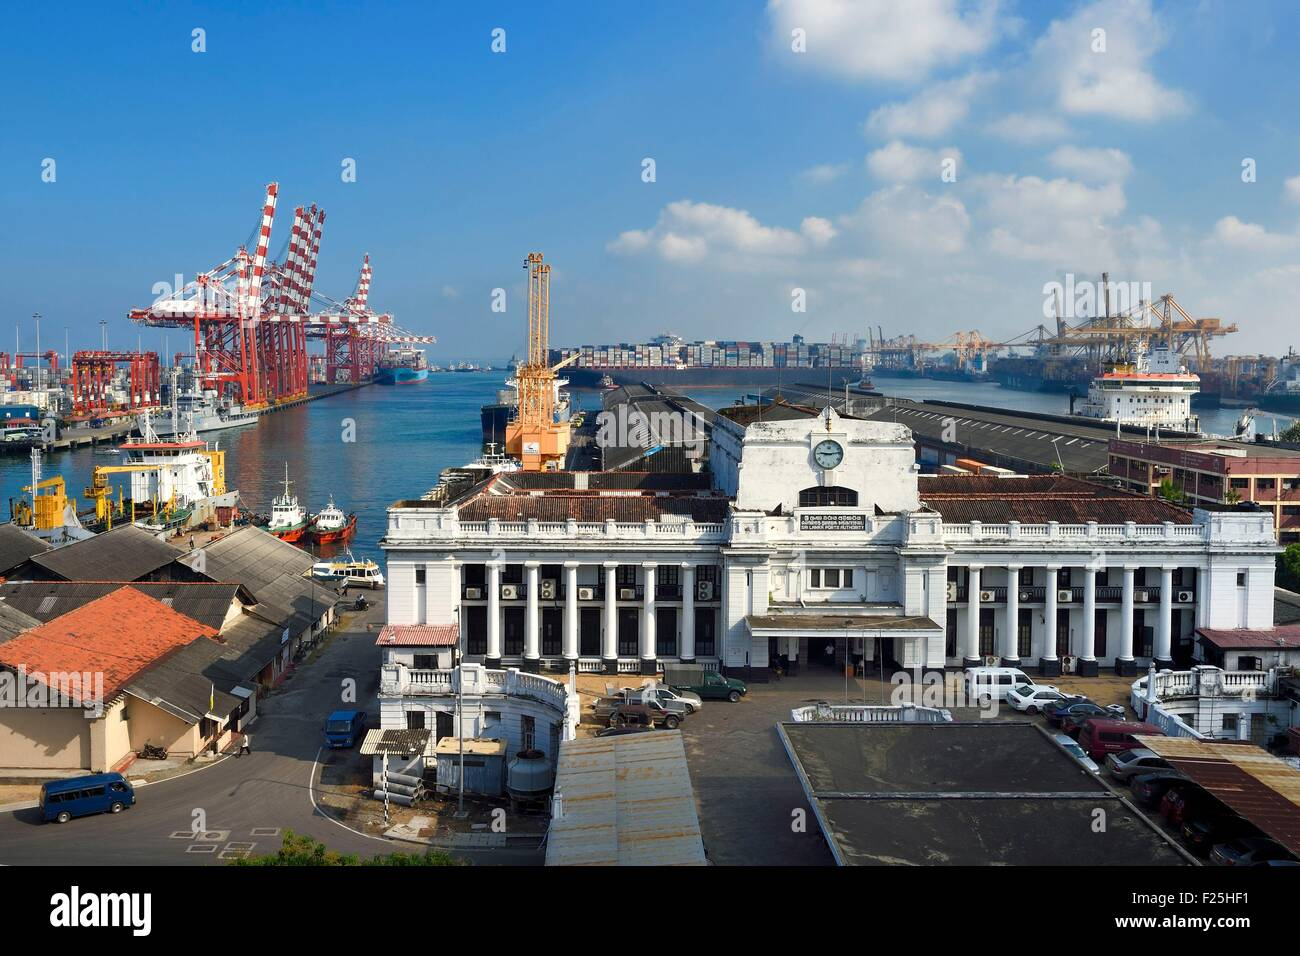 Sri Lanka, Western Province, Colombo District, Colombo, the commercial port, port authority building Stock Photo